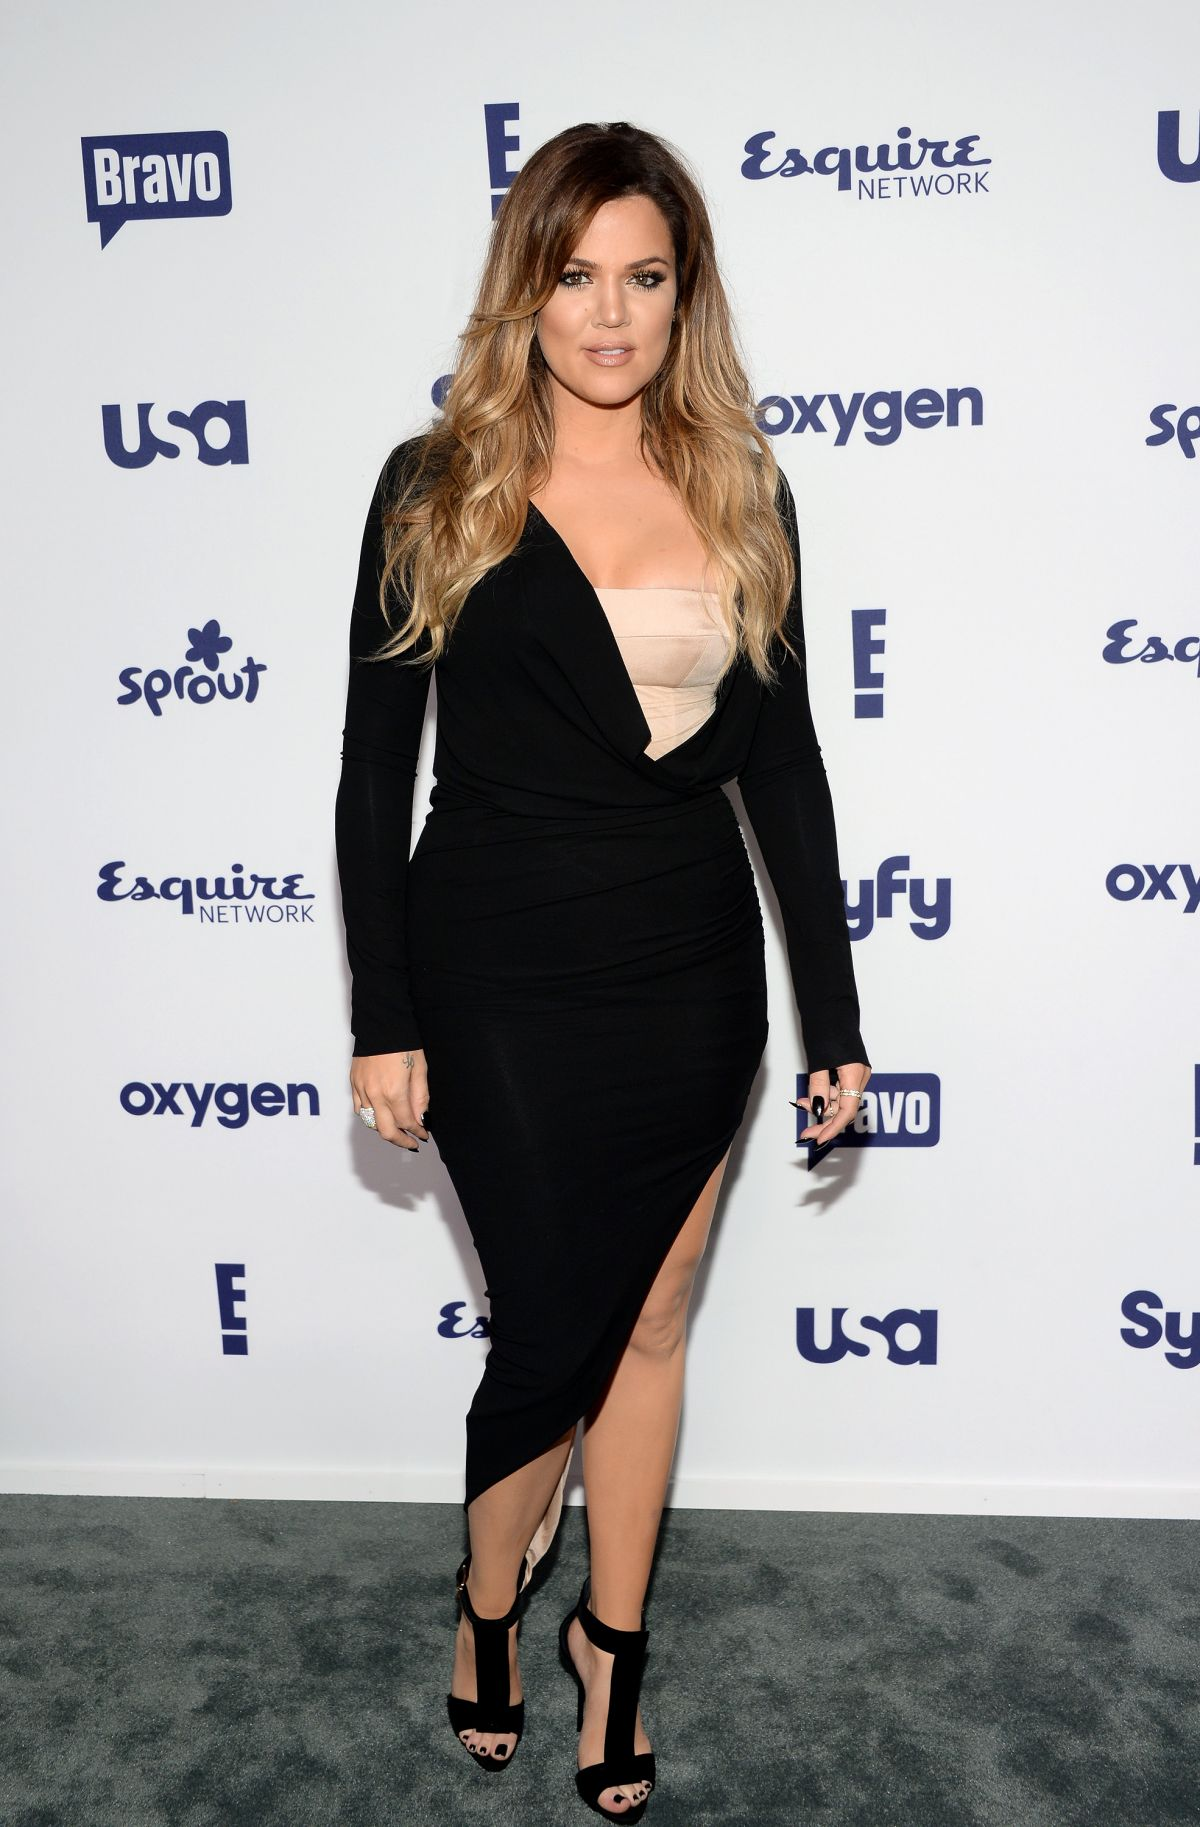 Compare Khloe Kardashian's Height, Weight, Body ...